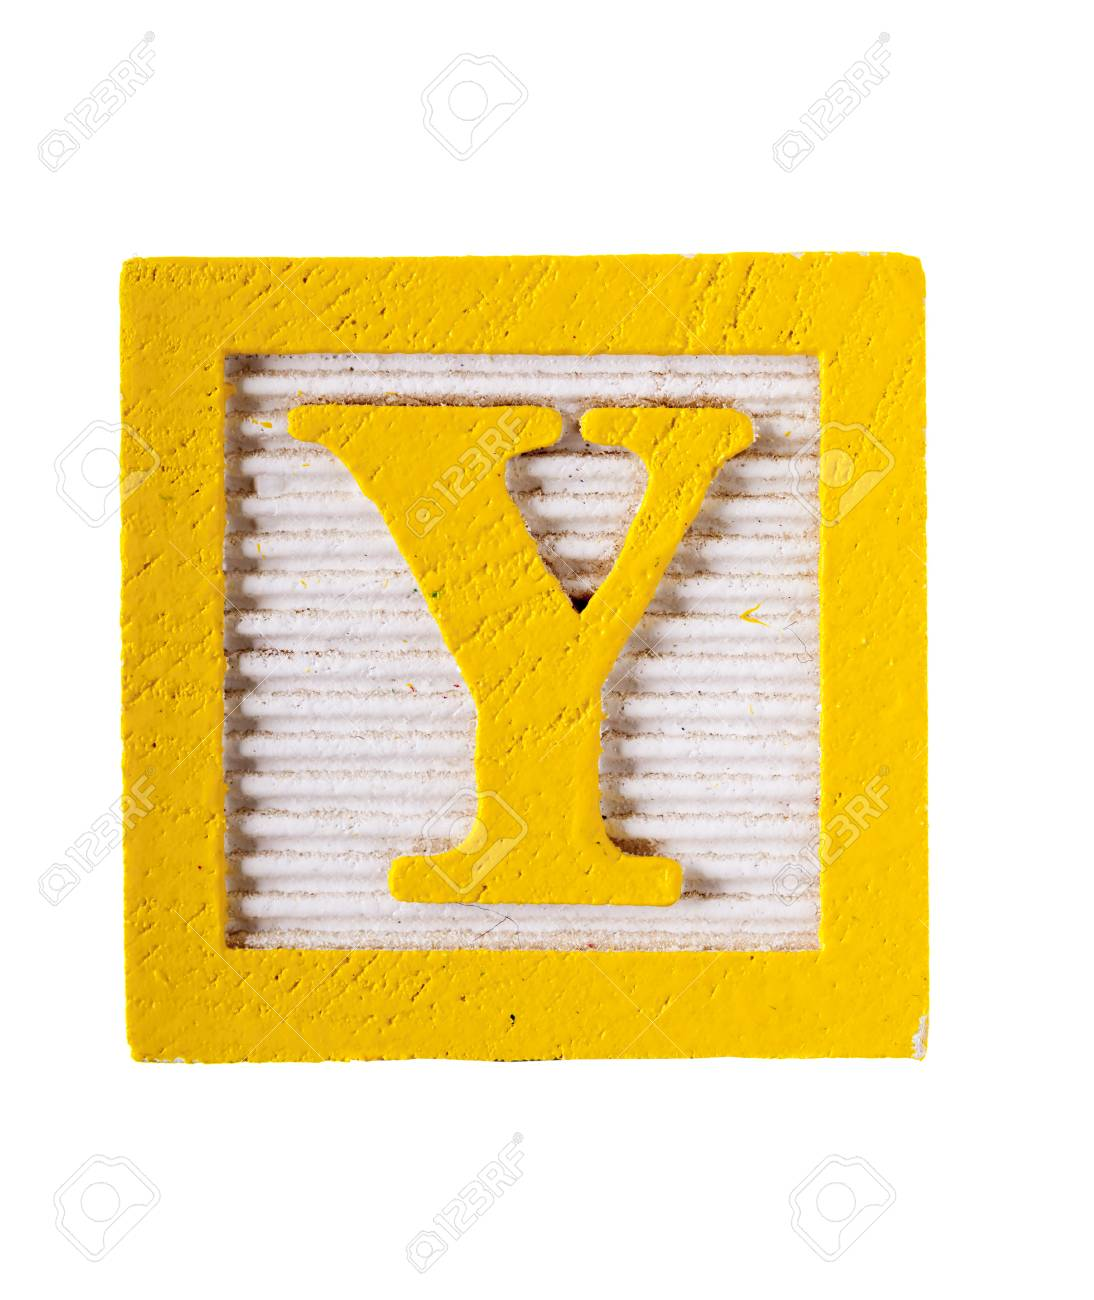 Wooden Alphabet Block With Letter Y Block Isolated On White Stock